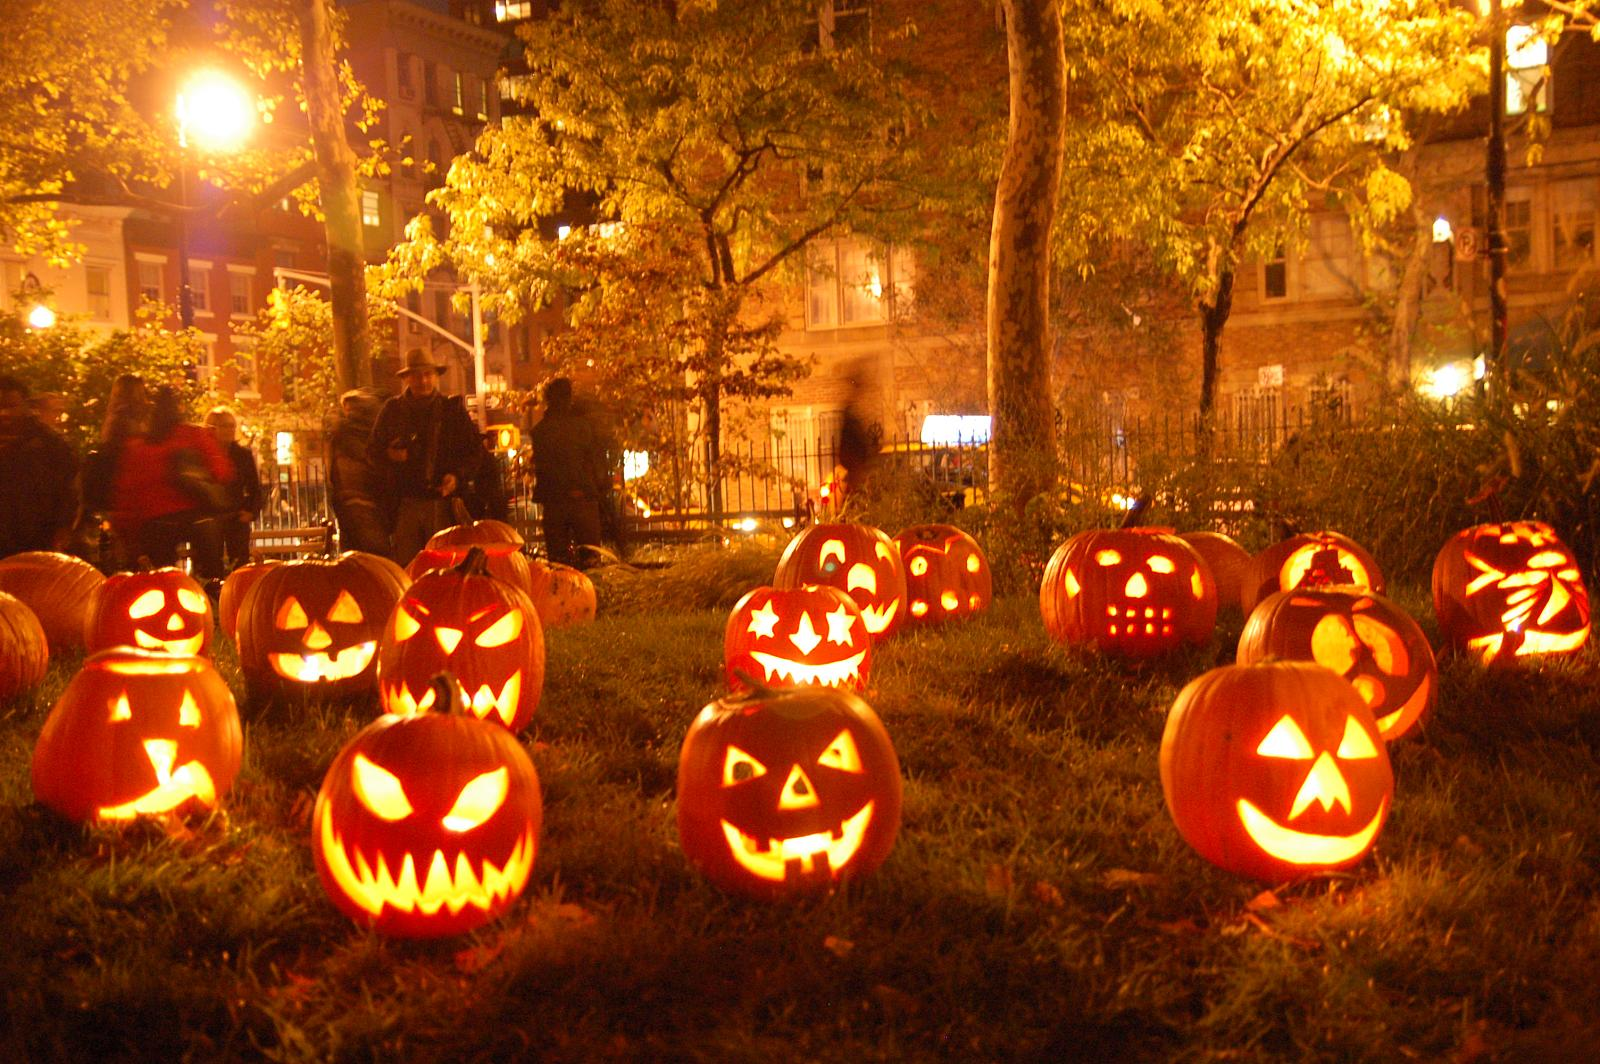 Jack-o'-lanterns adorning on Halloween